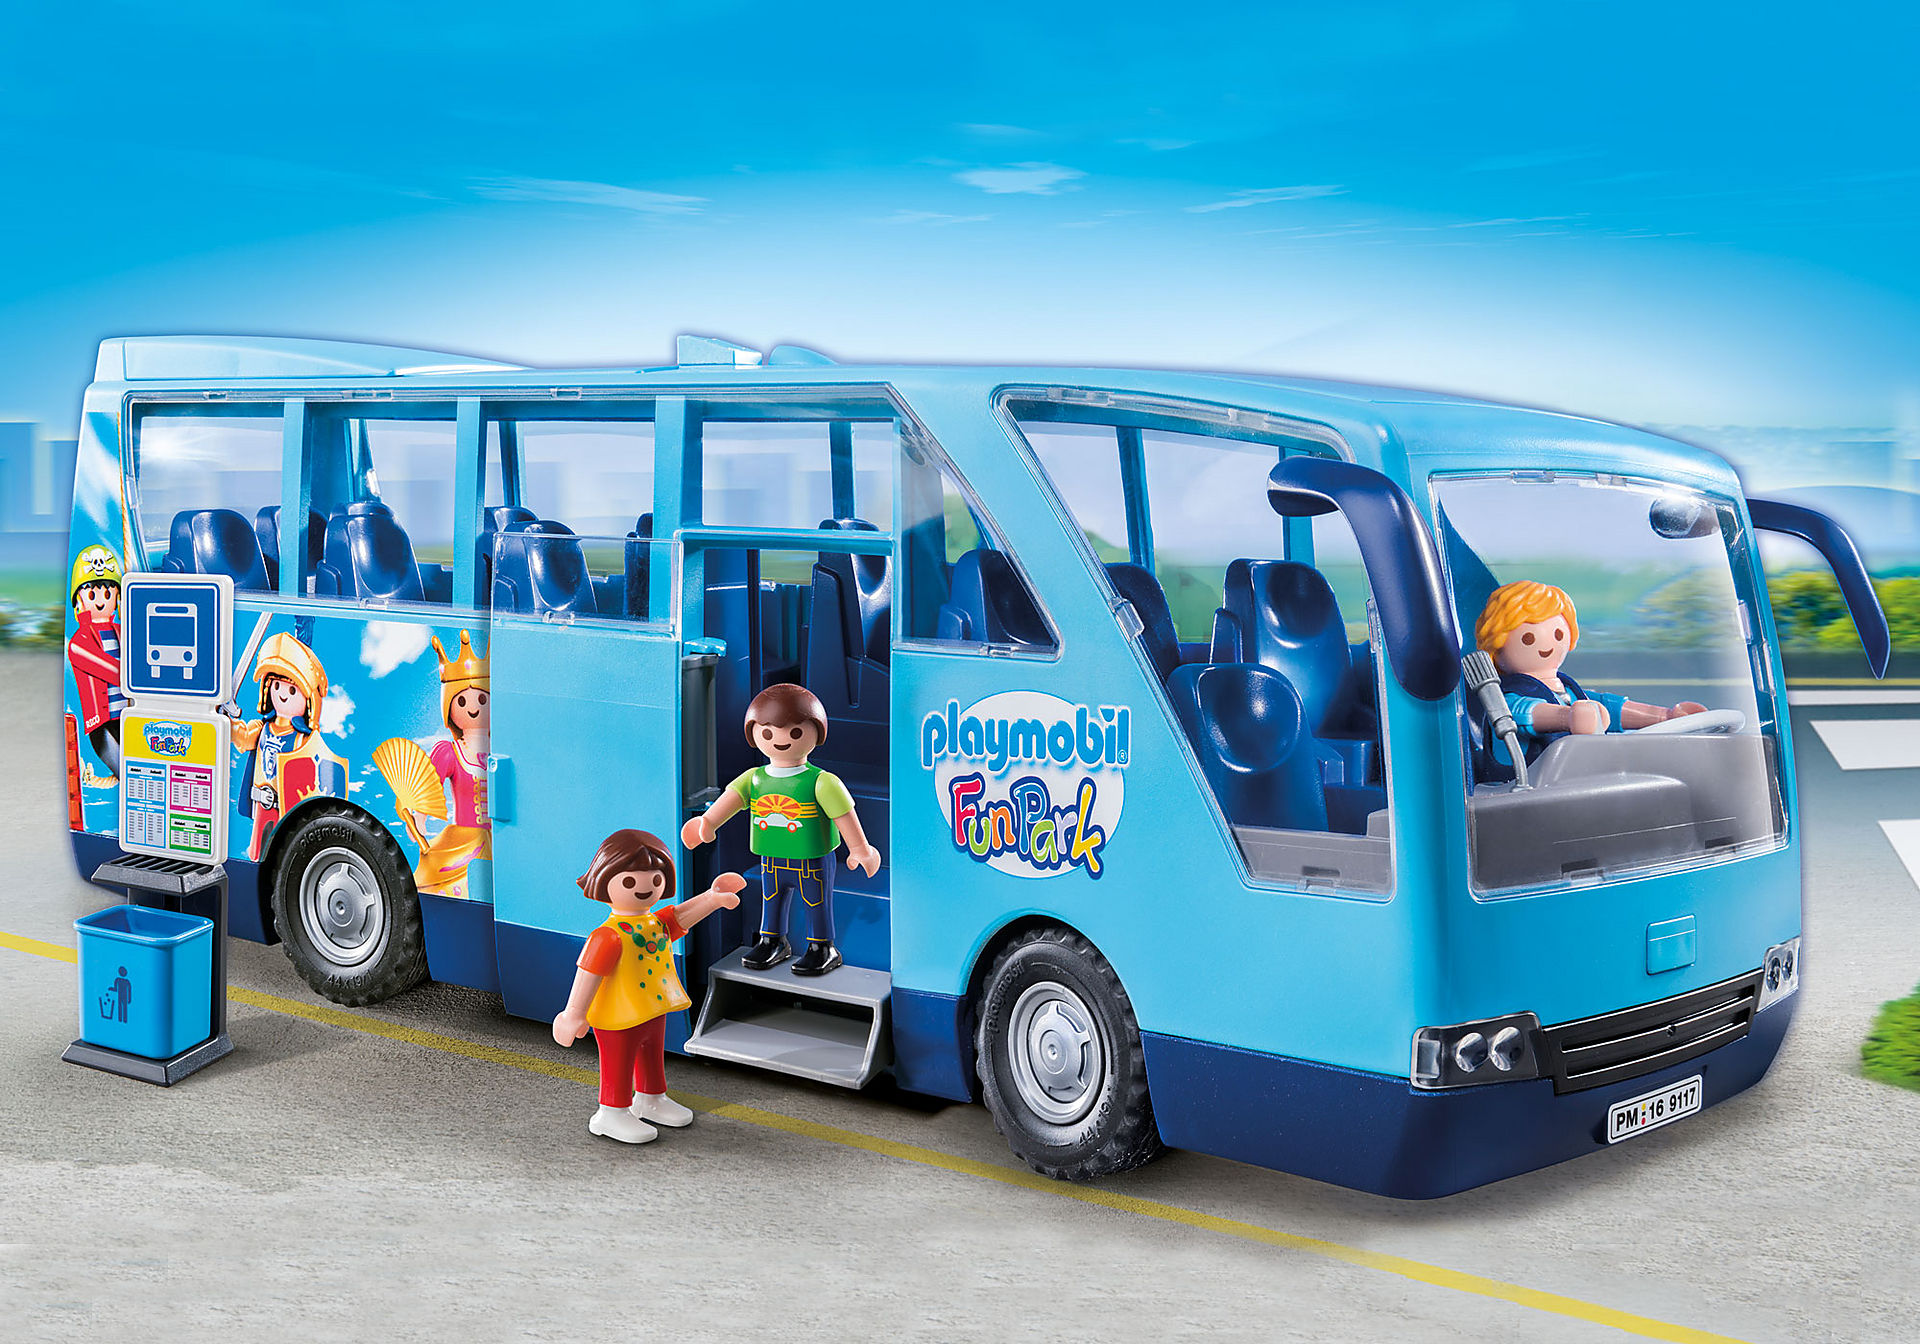 9117 PLAYMOBIL-FunPark Bus zoom image1